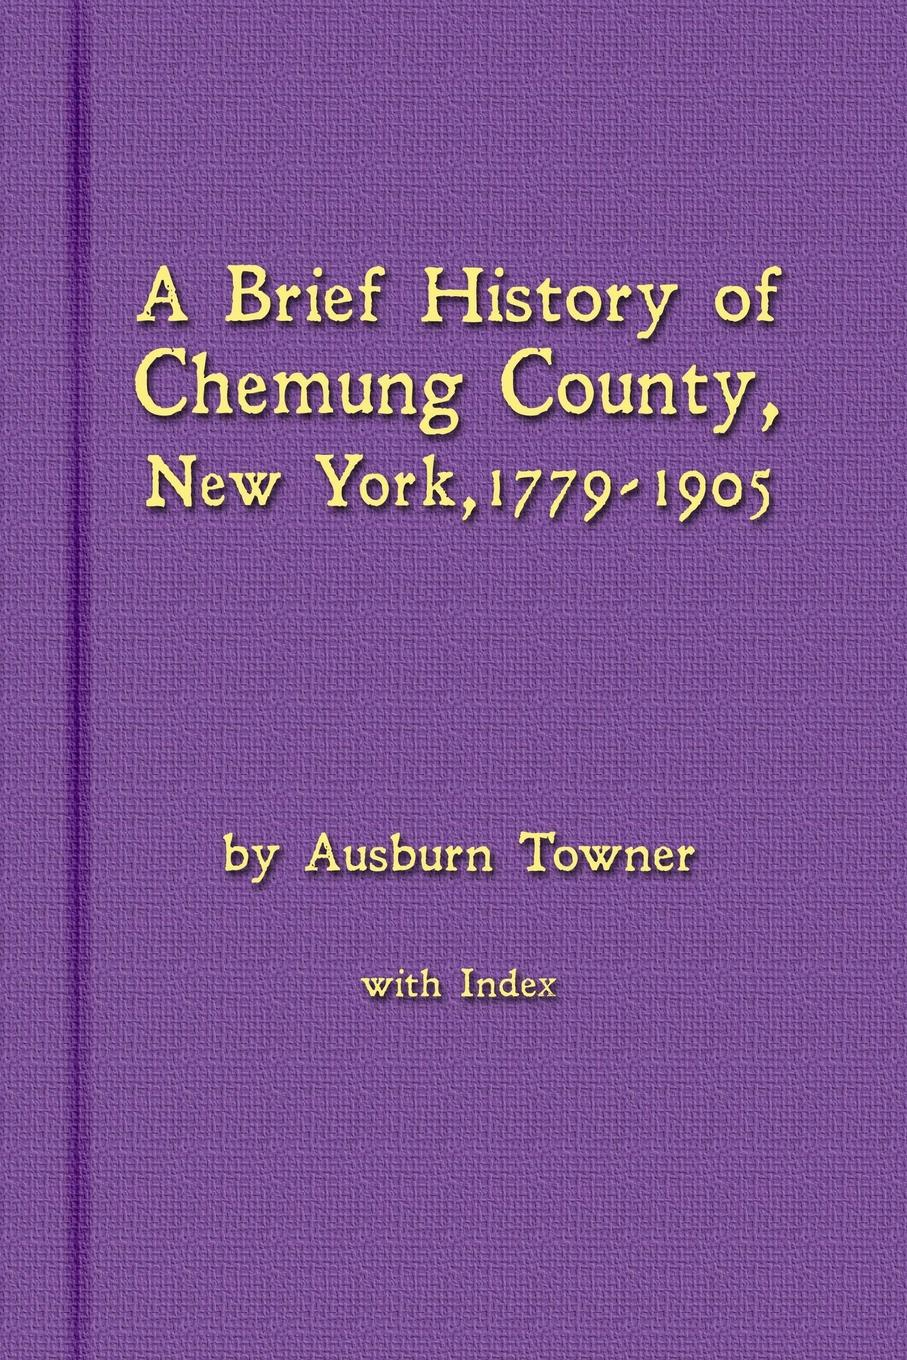 Ausburn Towner A Brief History of Chemung County, New York, 1779 -1905 with Index t apoleon cheney historical sketch of the chemung valley new york elmira and chemung county and broome herkimer livingston montgomery onondaga ontario otsego schoharie schuyler steuben tioga ulster counties